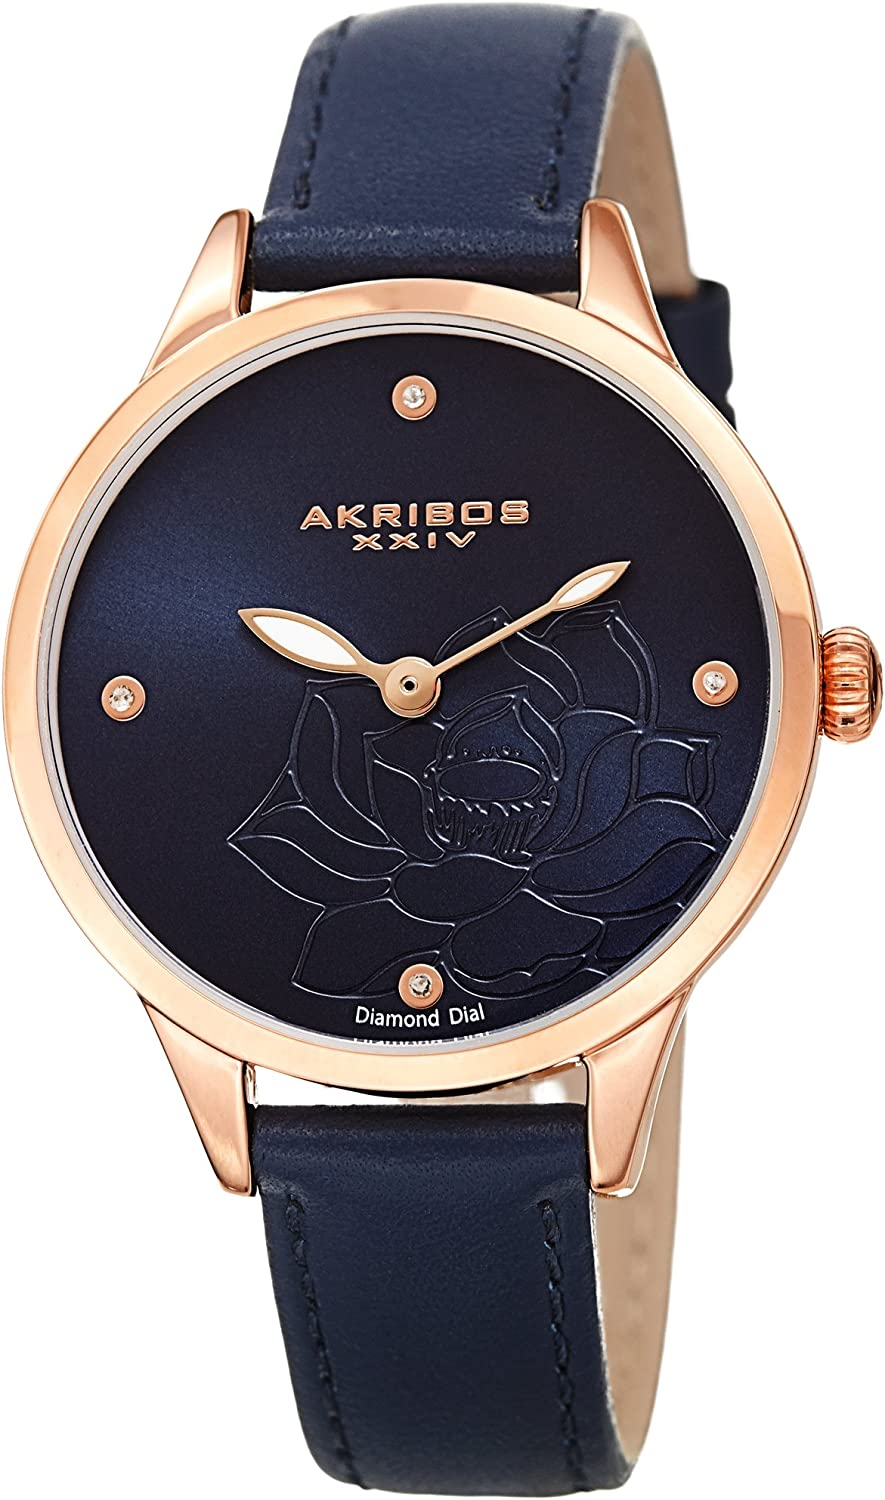 Akribos XXIV Flower Engraved Dial Watch – 4 Diamond Markers On a Leather Strap Women s Watch – Beautiful Gift Box Perfect for Mothers Day – AK1047